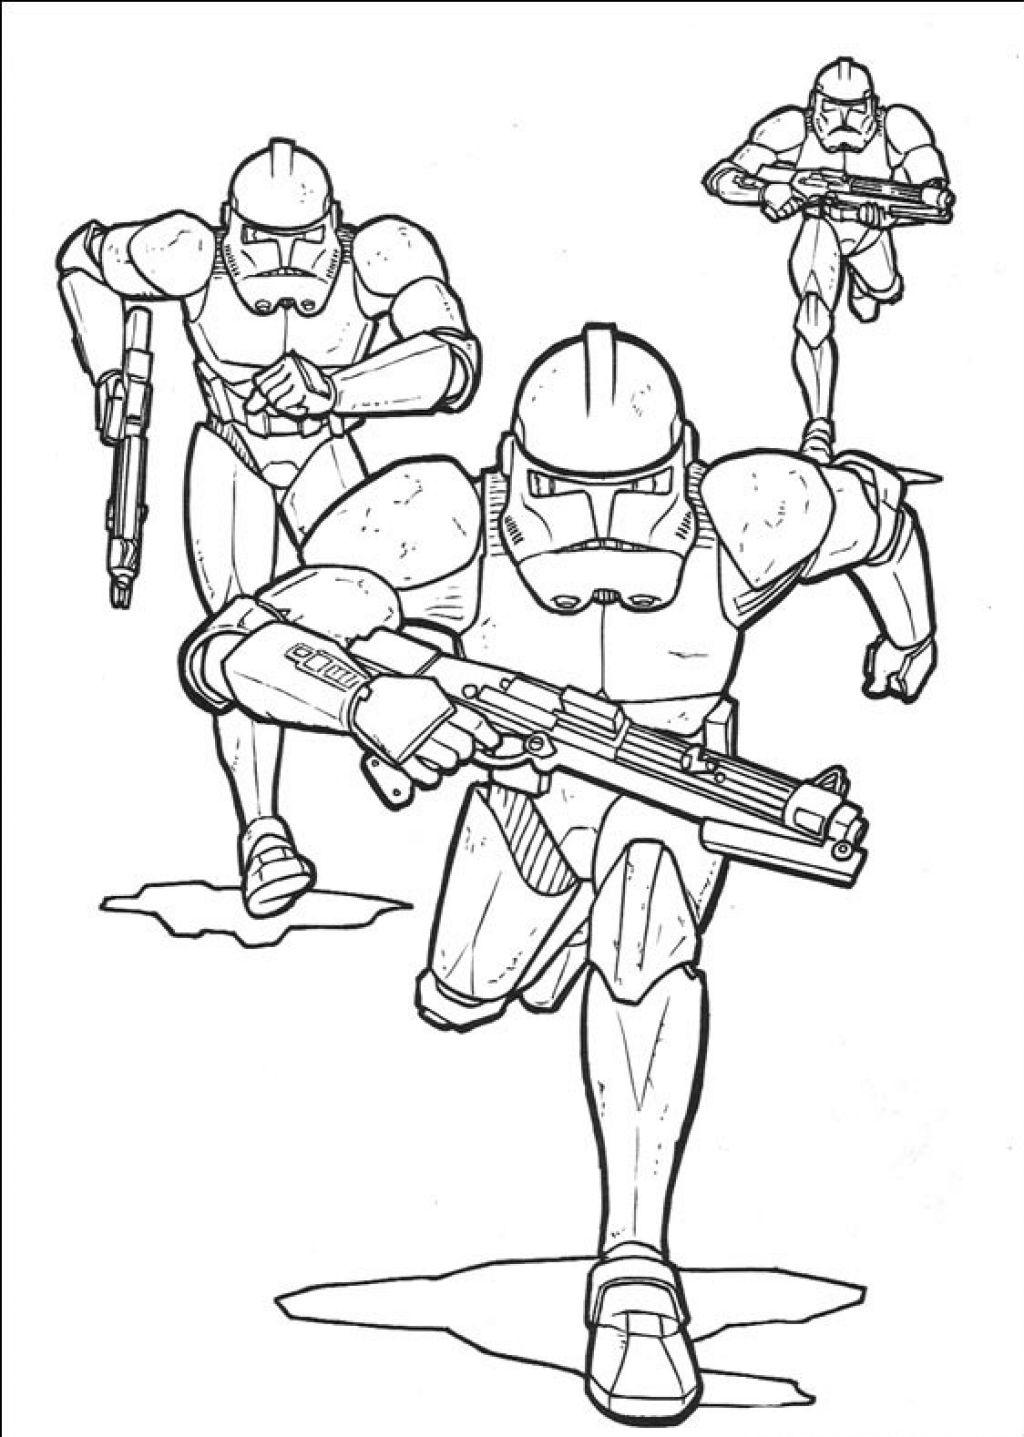 Star Wars Coloring Pages Free Printable Star Wars Coloring Pages Download Of Fresh Star Wars Coloring Pages to Print